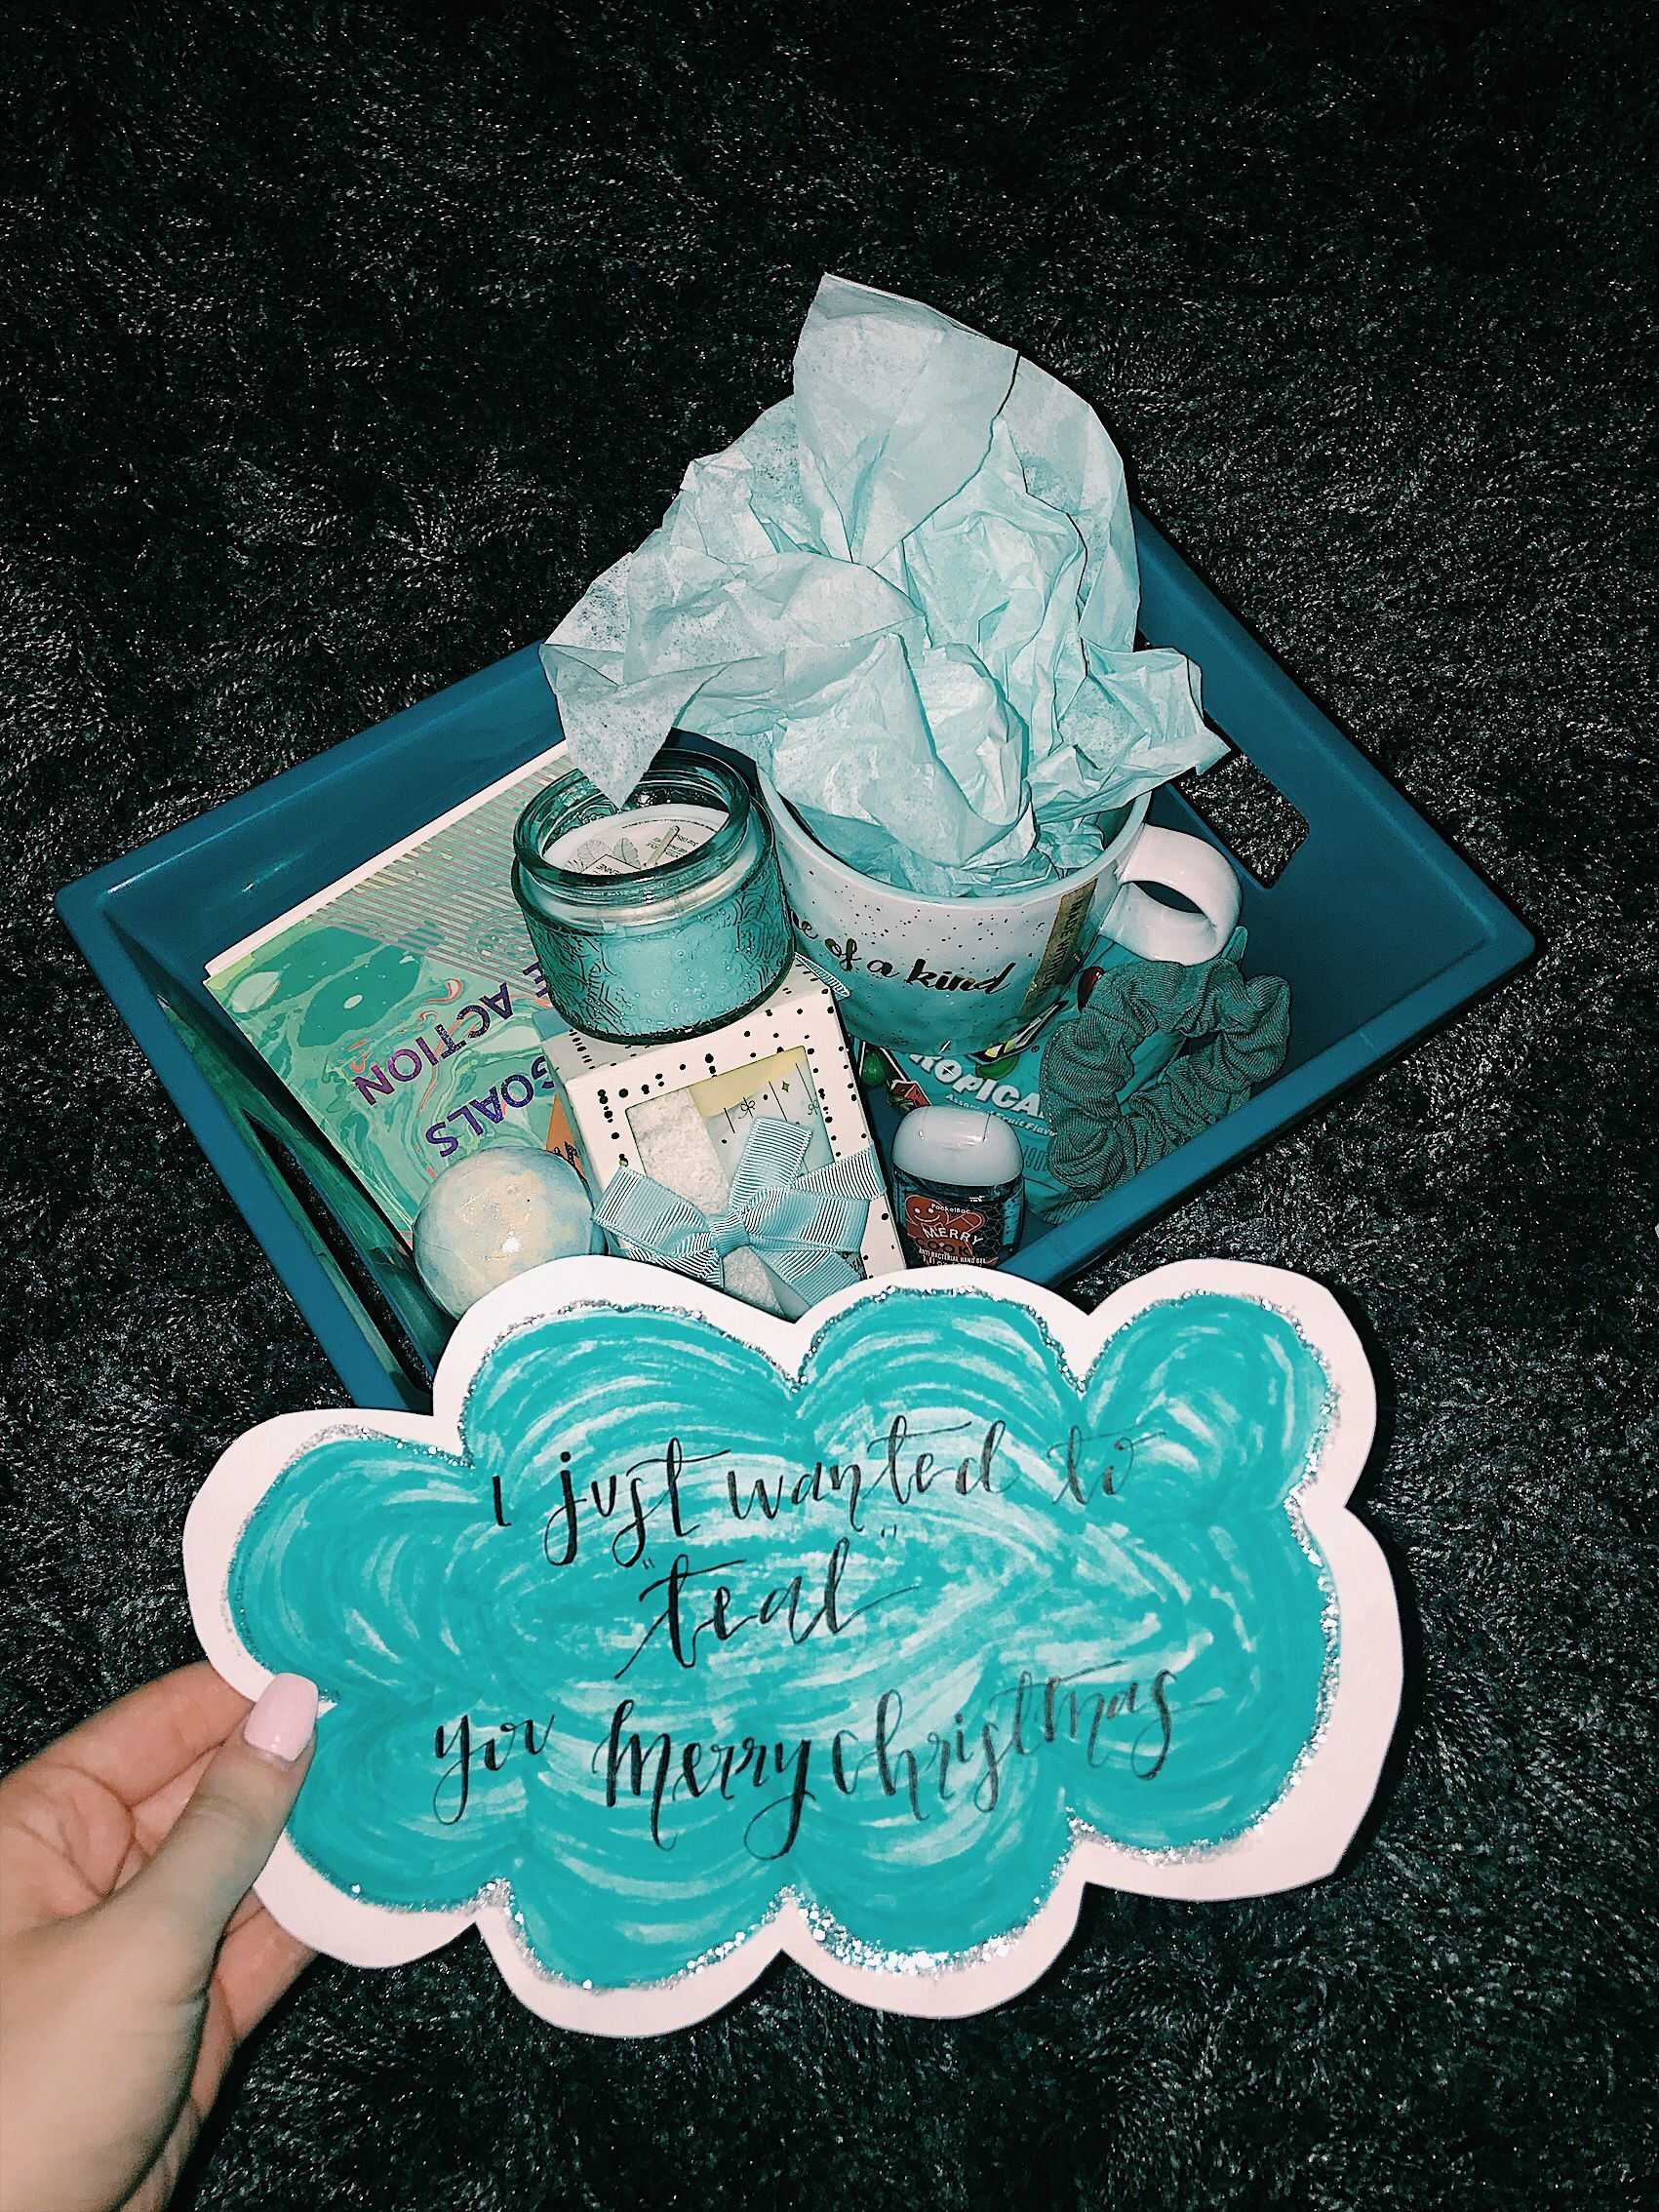 Teal Themed Gift Basket Teal Box Christmas Gift Vsco Cloud B In 2020 Themed Gift Baskets Bff Birthday Gift Friend Birthday Gifts